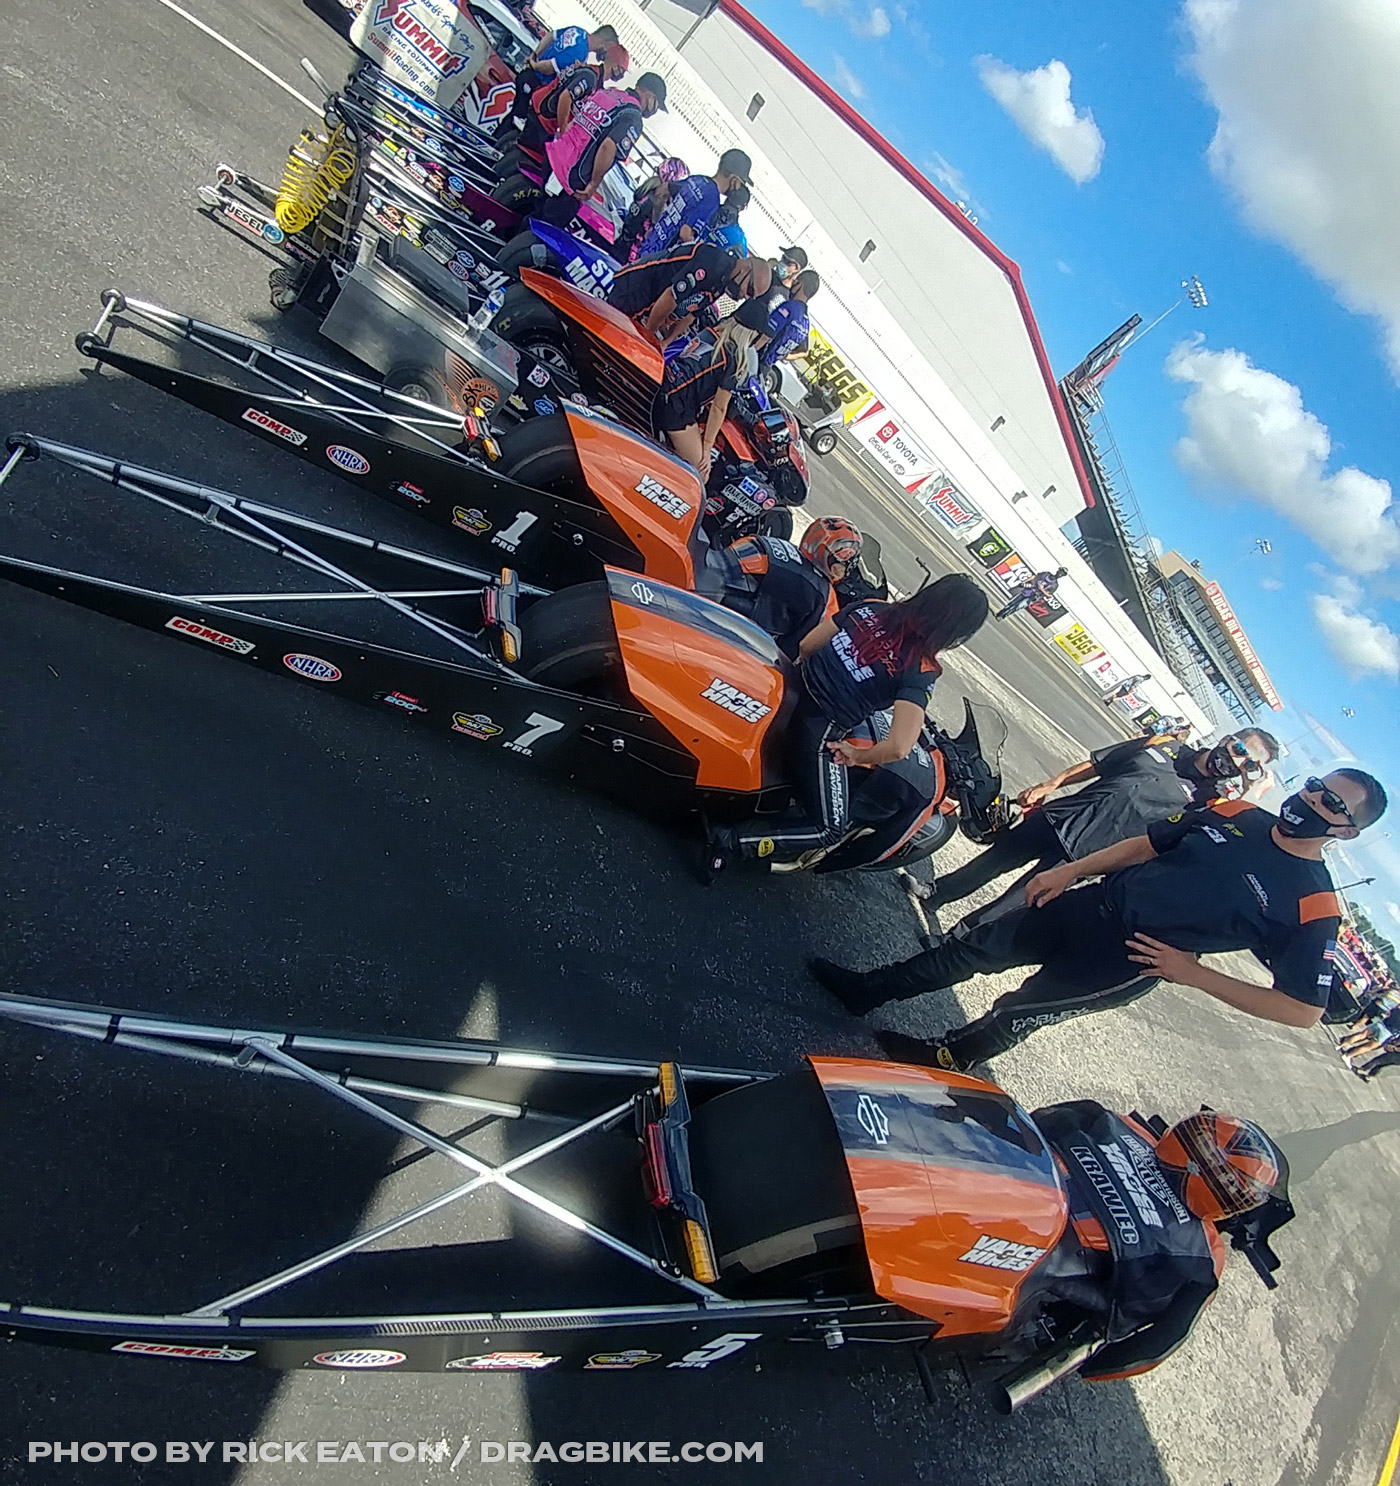 2020 NHRA Pro Stock Motorcycles Indy